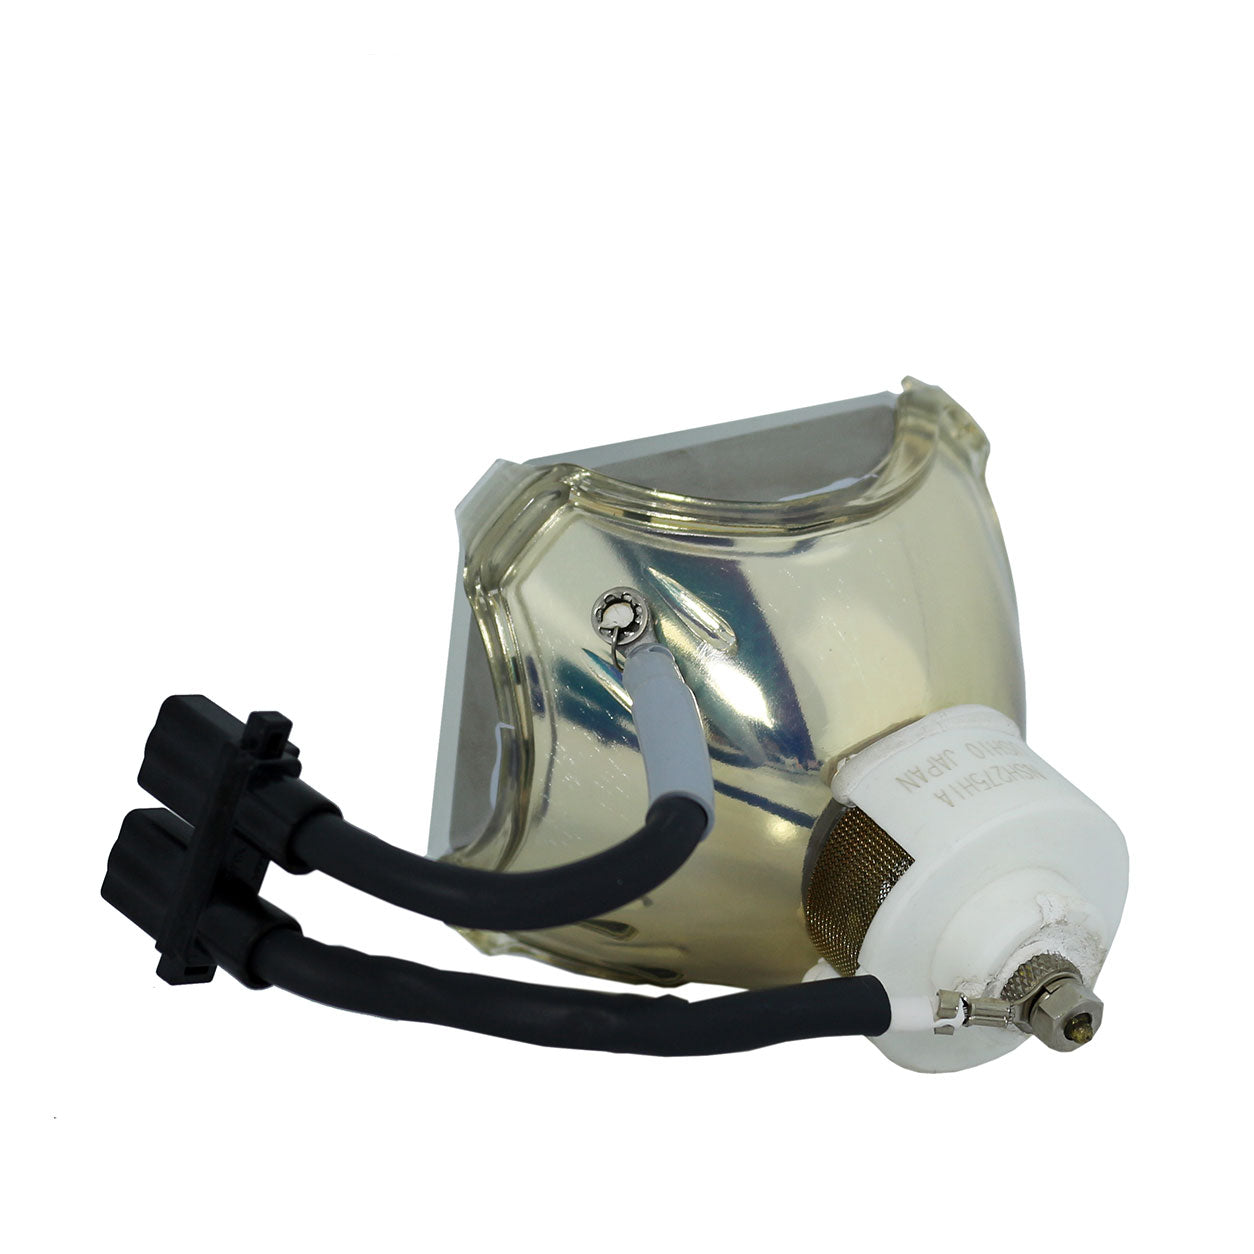 3M 78-6969-9601-2 Ushio Projector Bare Lamp